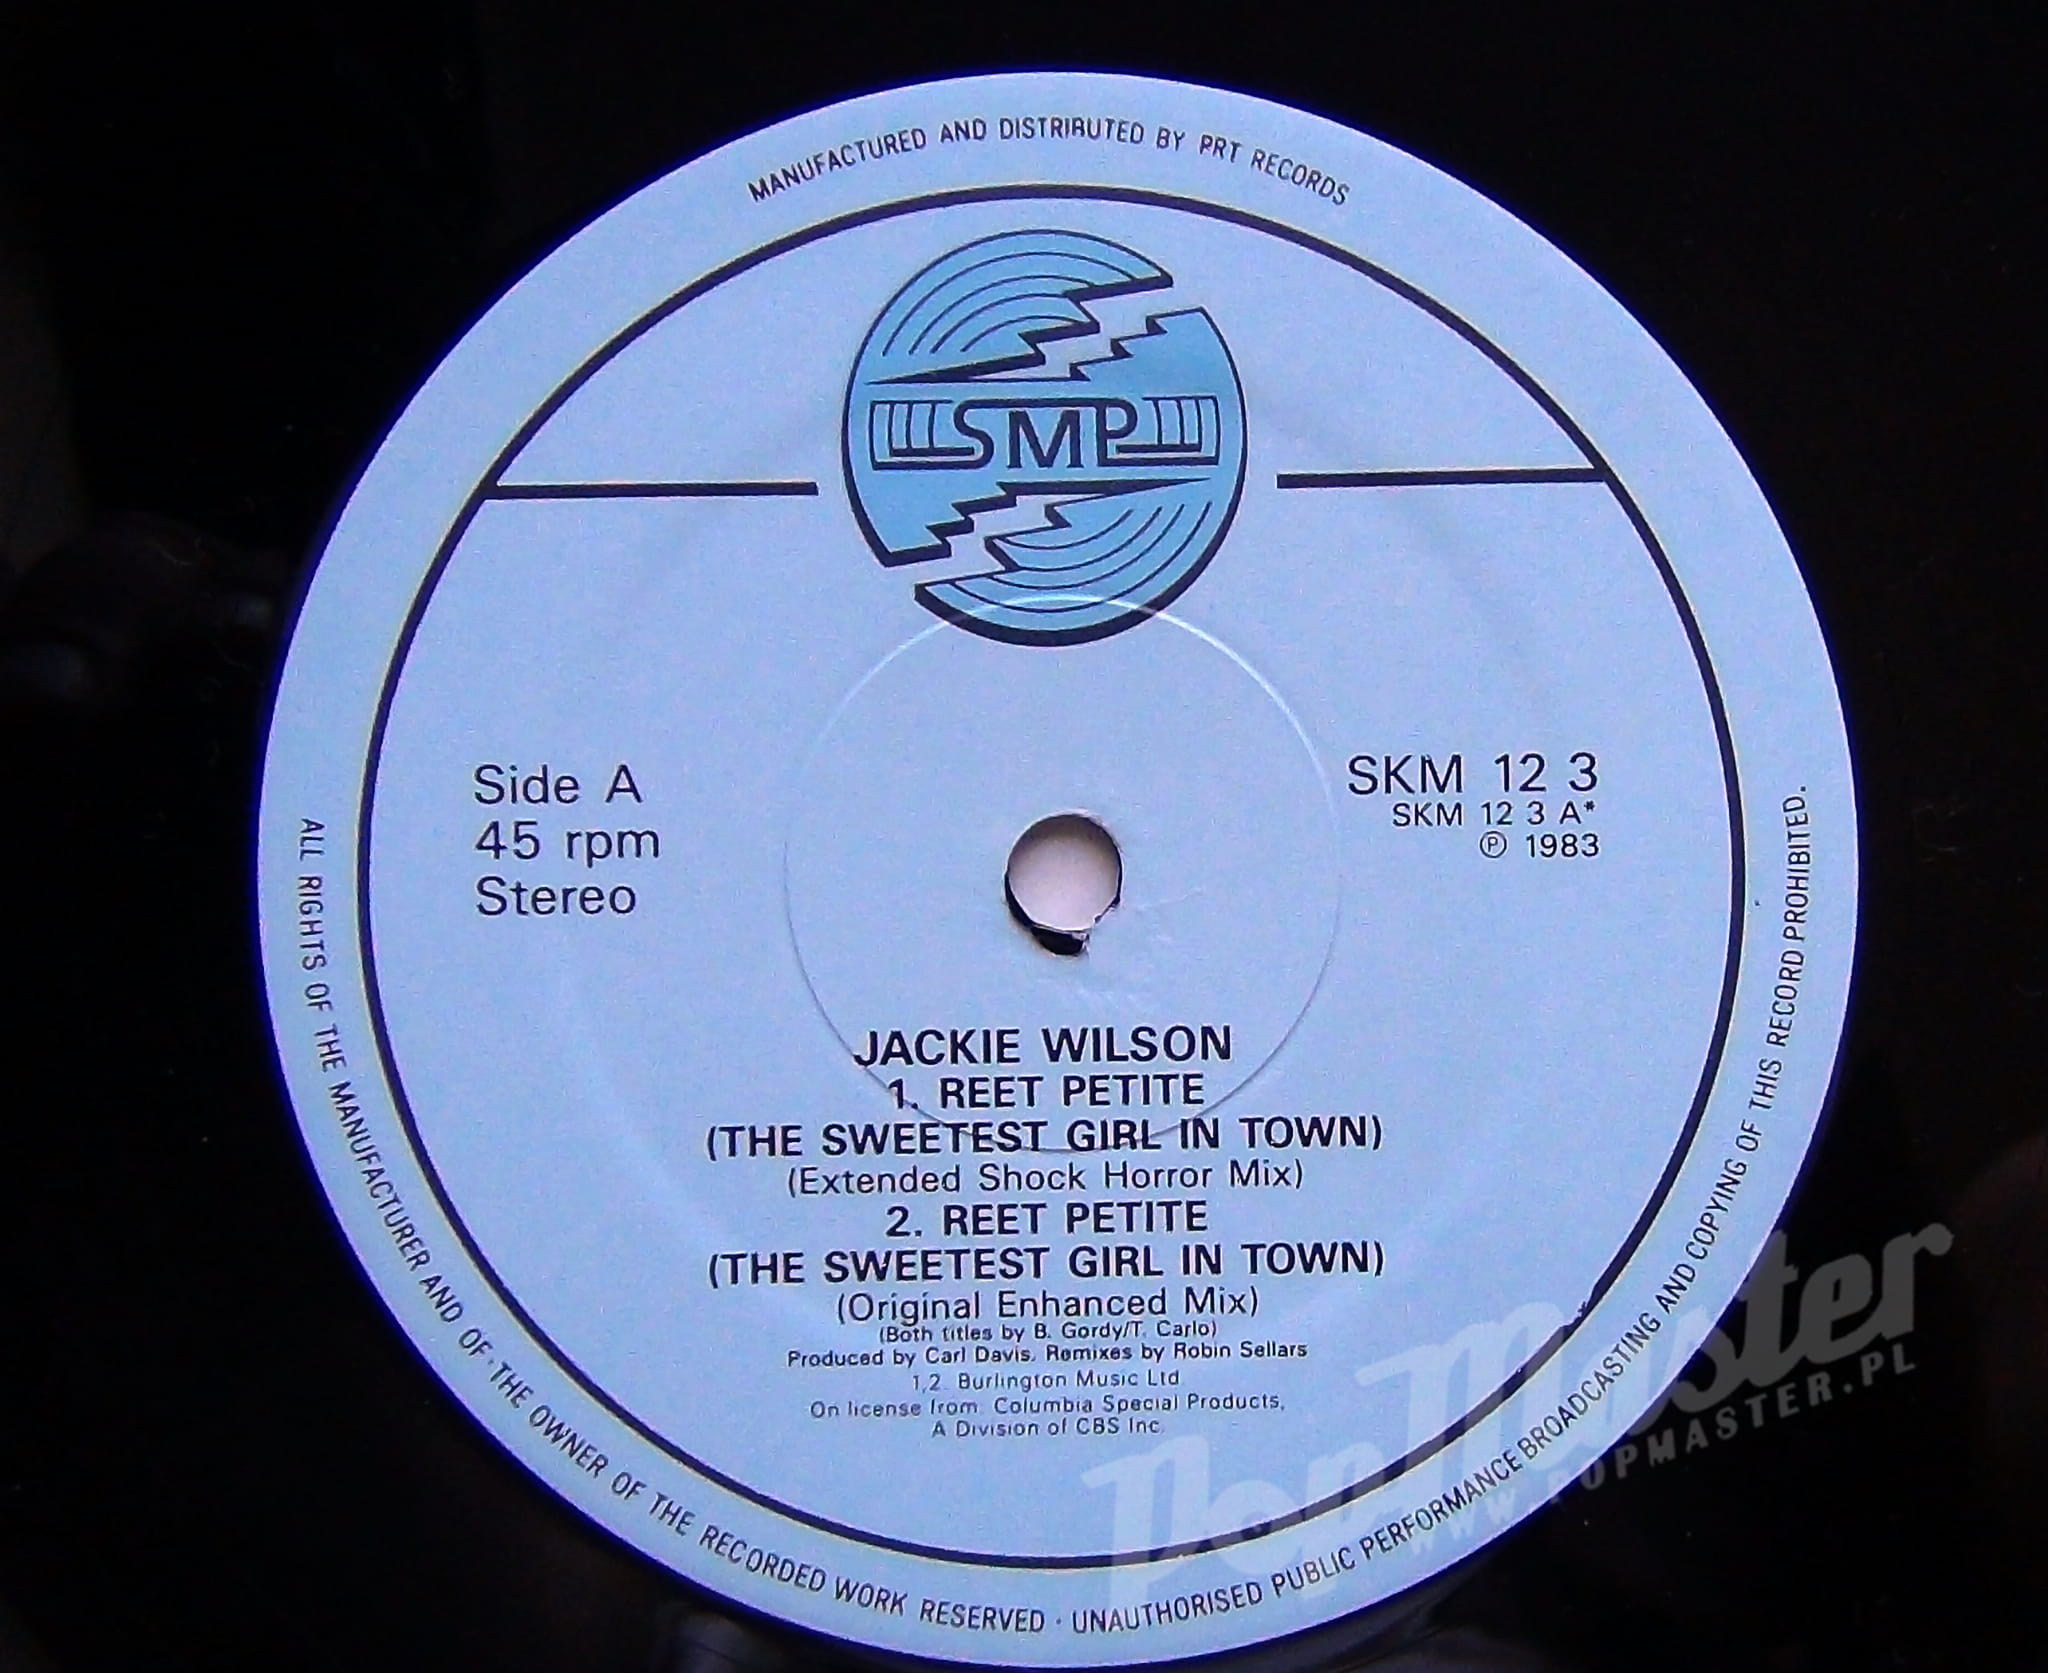 reet singles Find jackie wilson song information on allmusic allmusic new reet petite reet petite (the finest girl you ever want to meet) berry gordy, jr / tyran carlo.